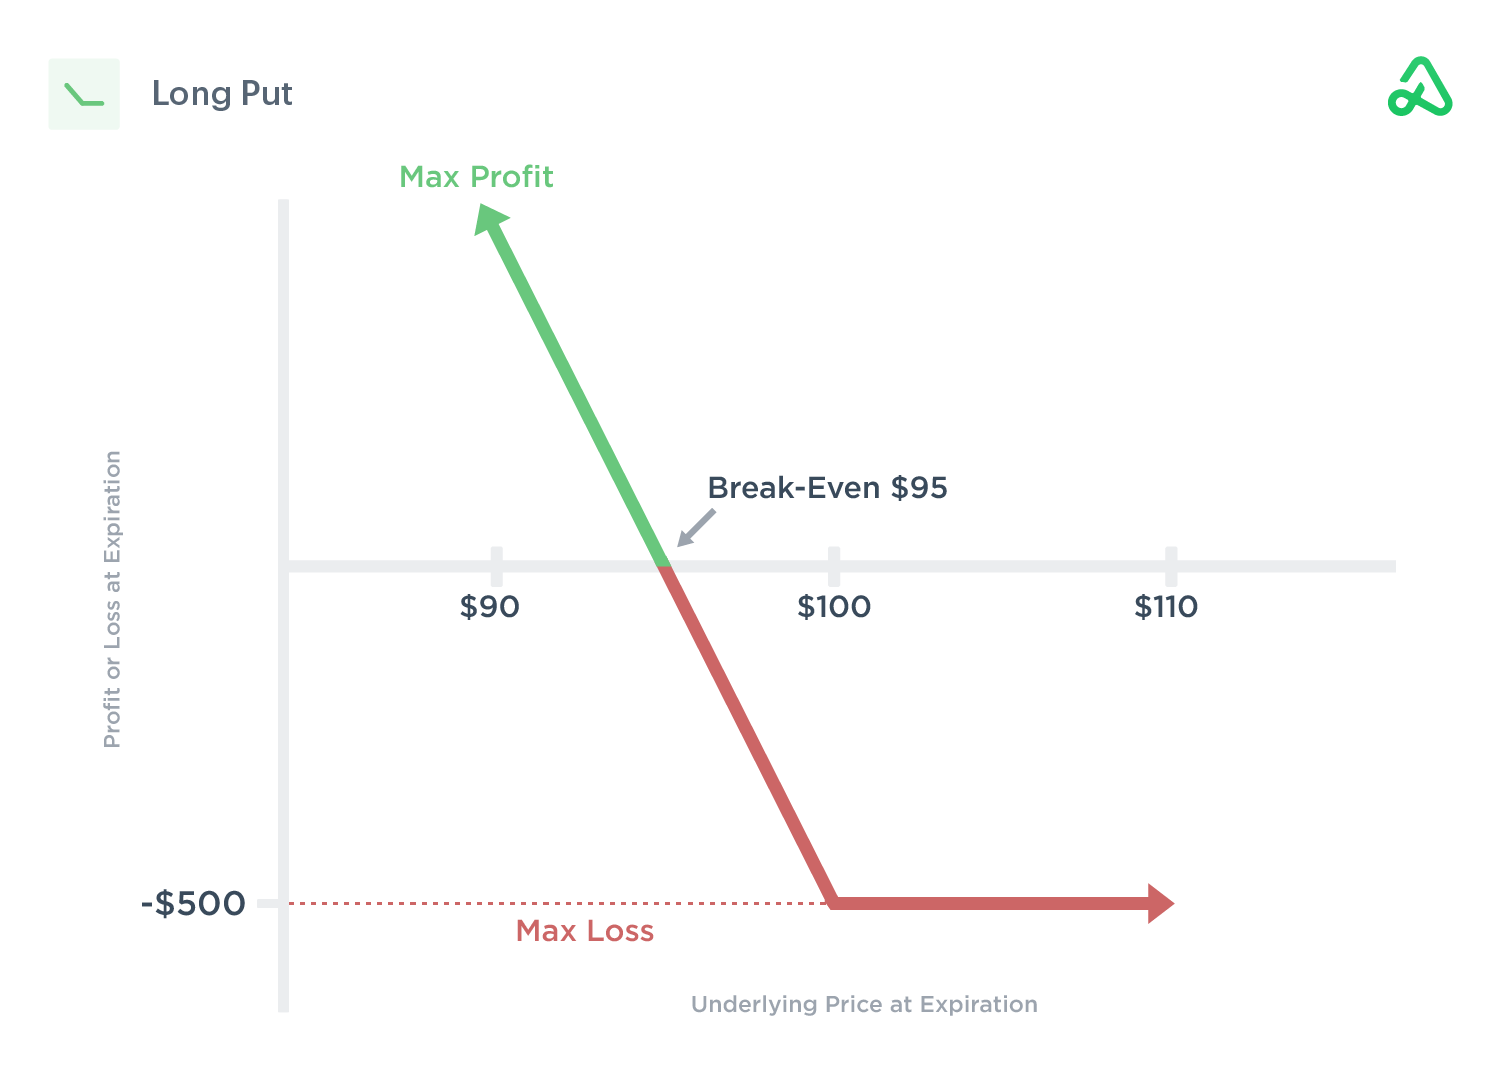 Image of long put payoff diagram showing max profit, max loss, and break-even points